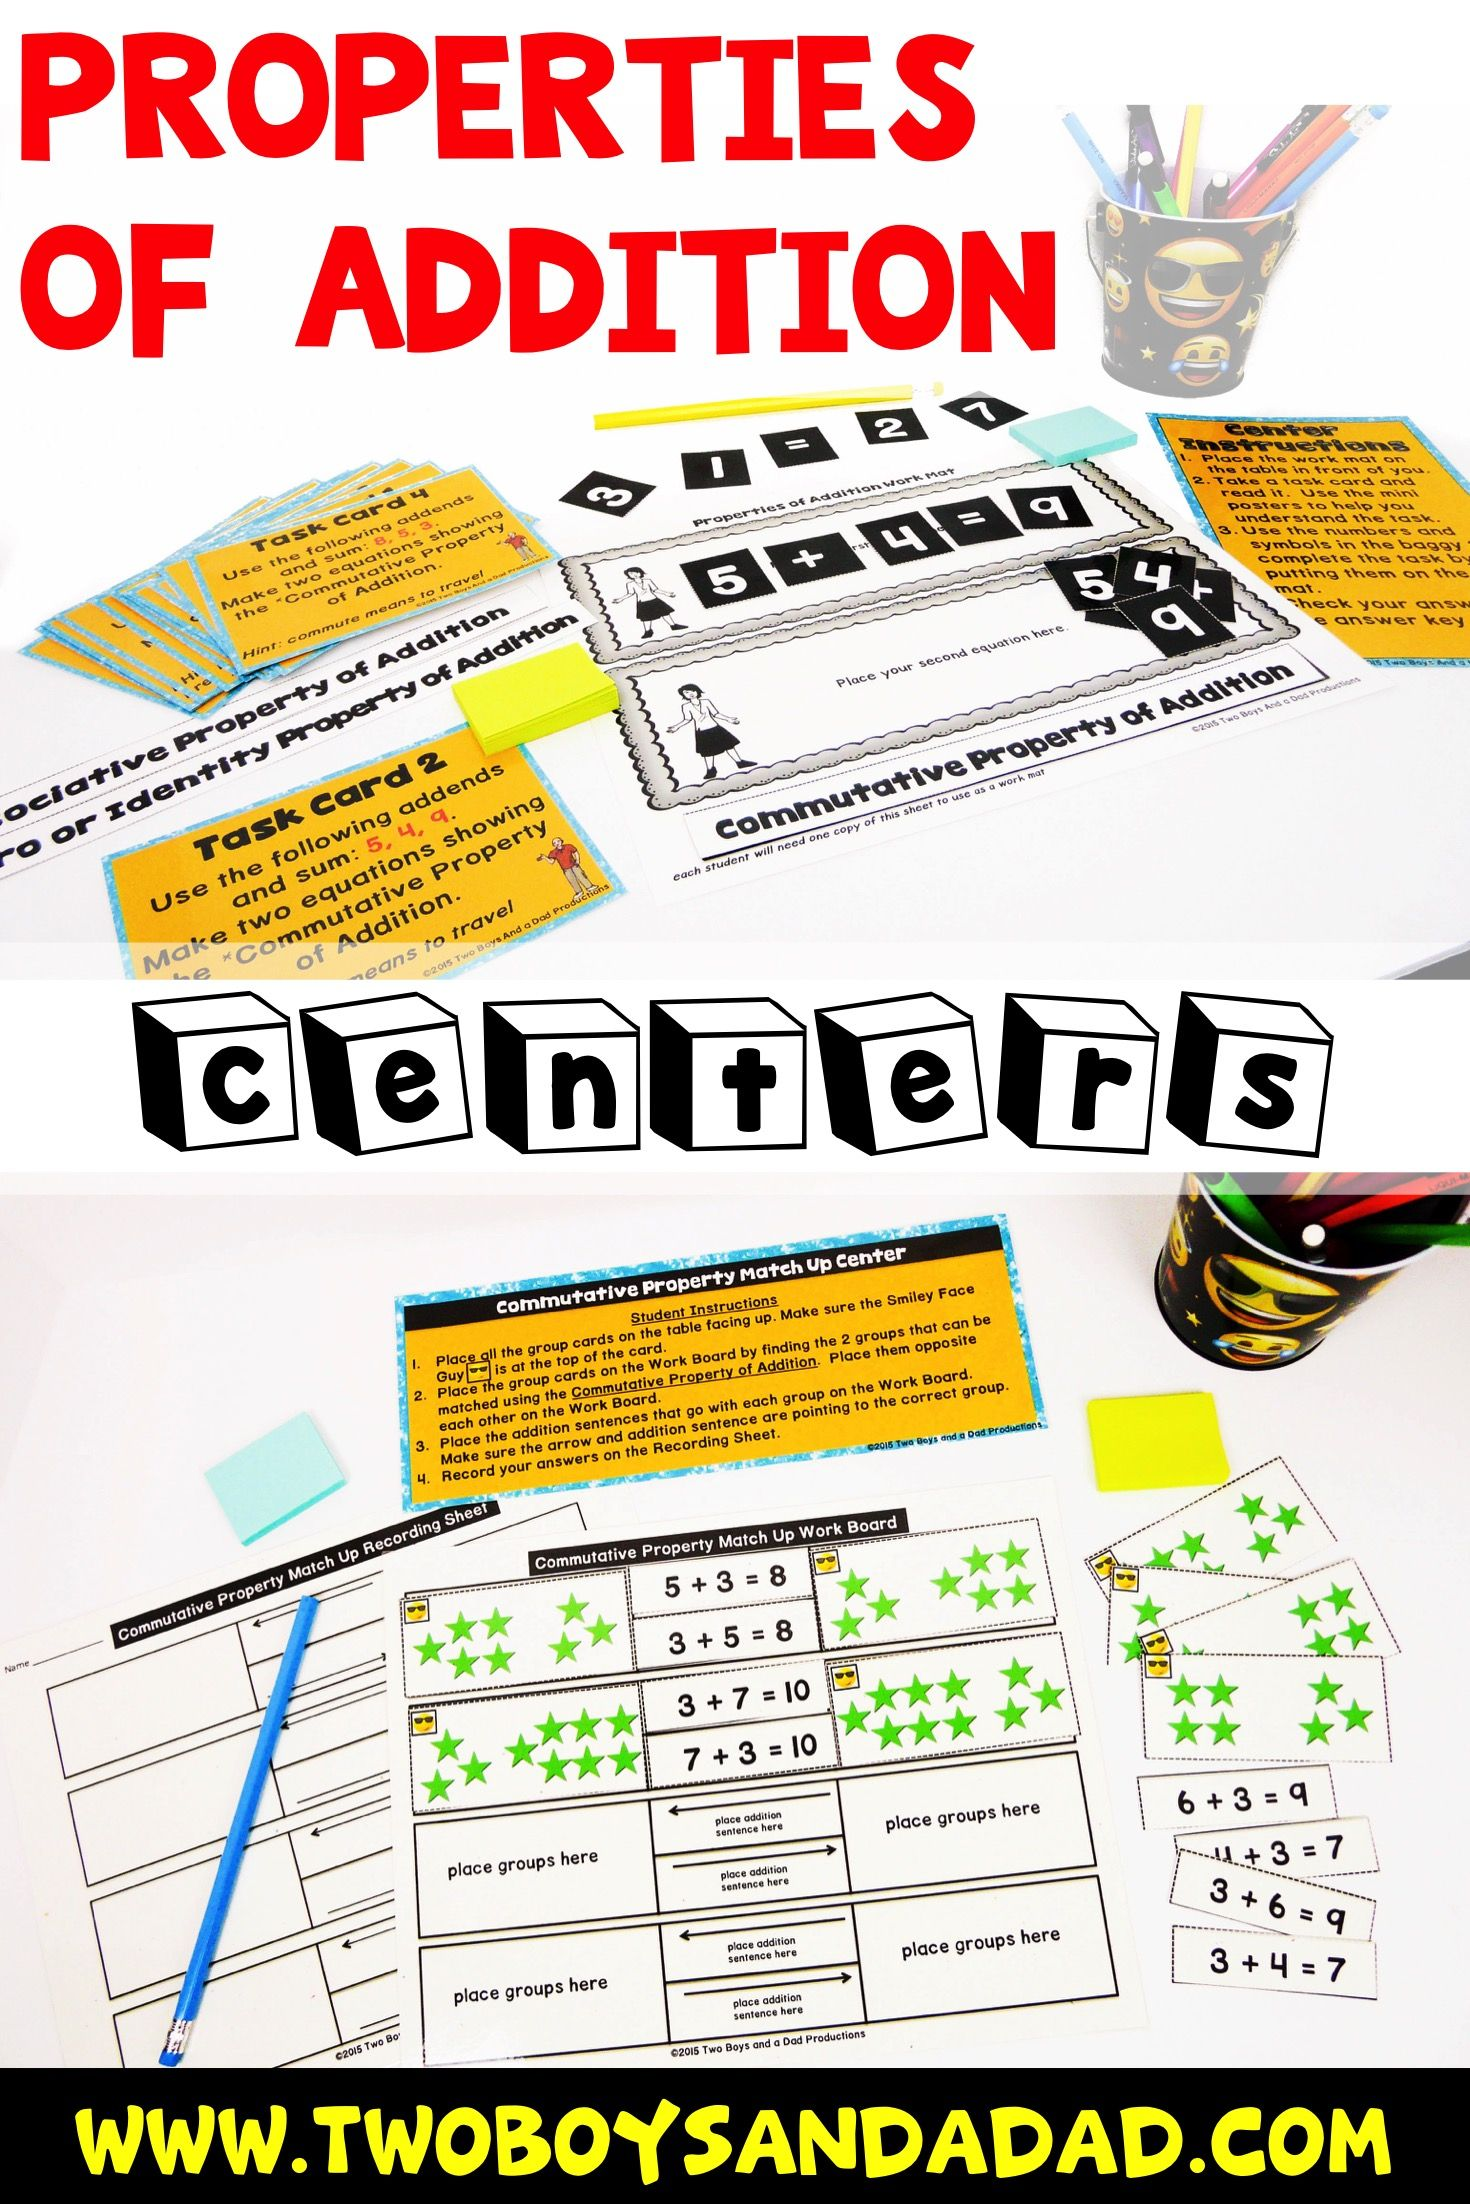 Properties Of Addition Hands On Centers With Images